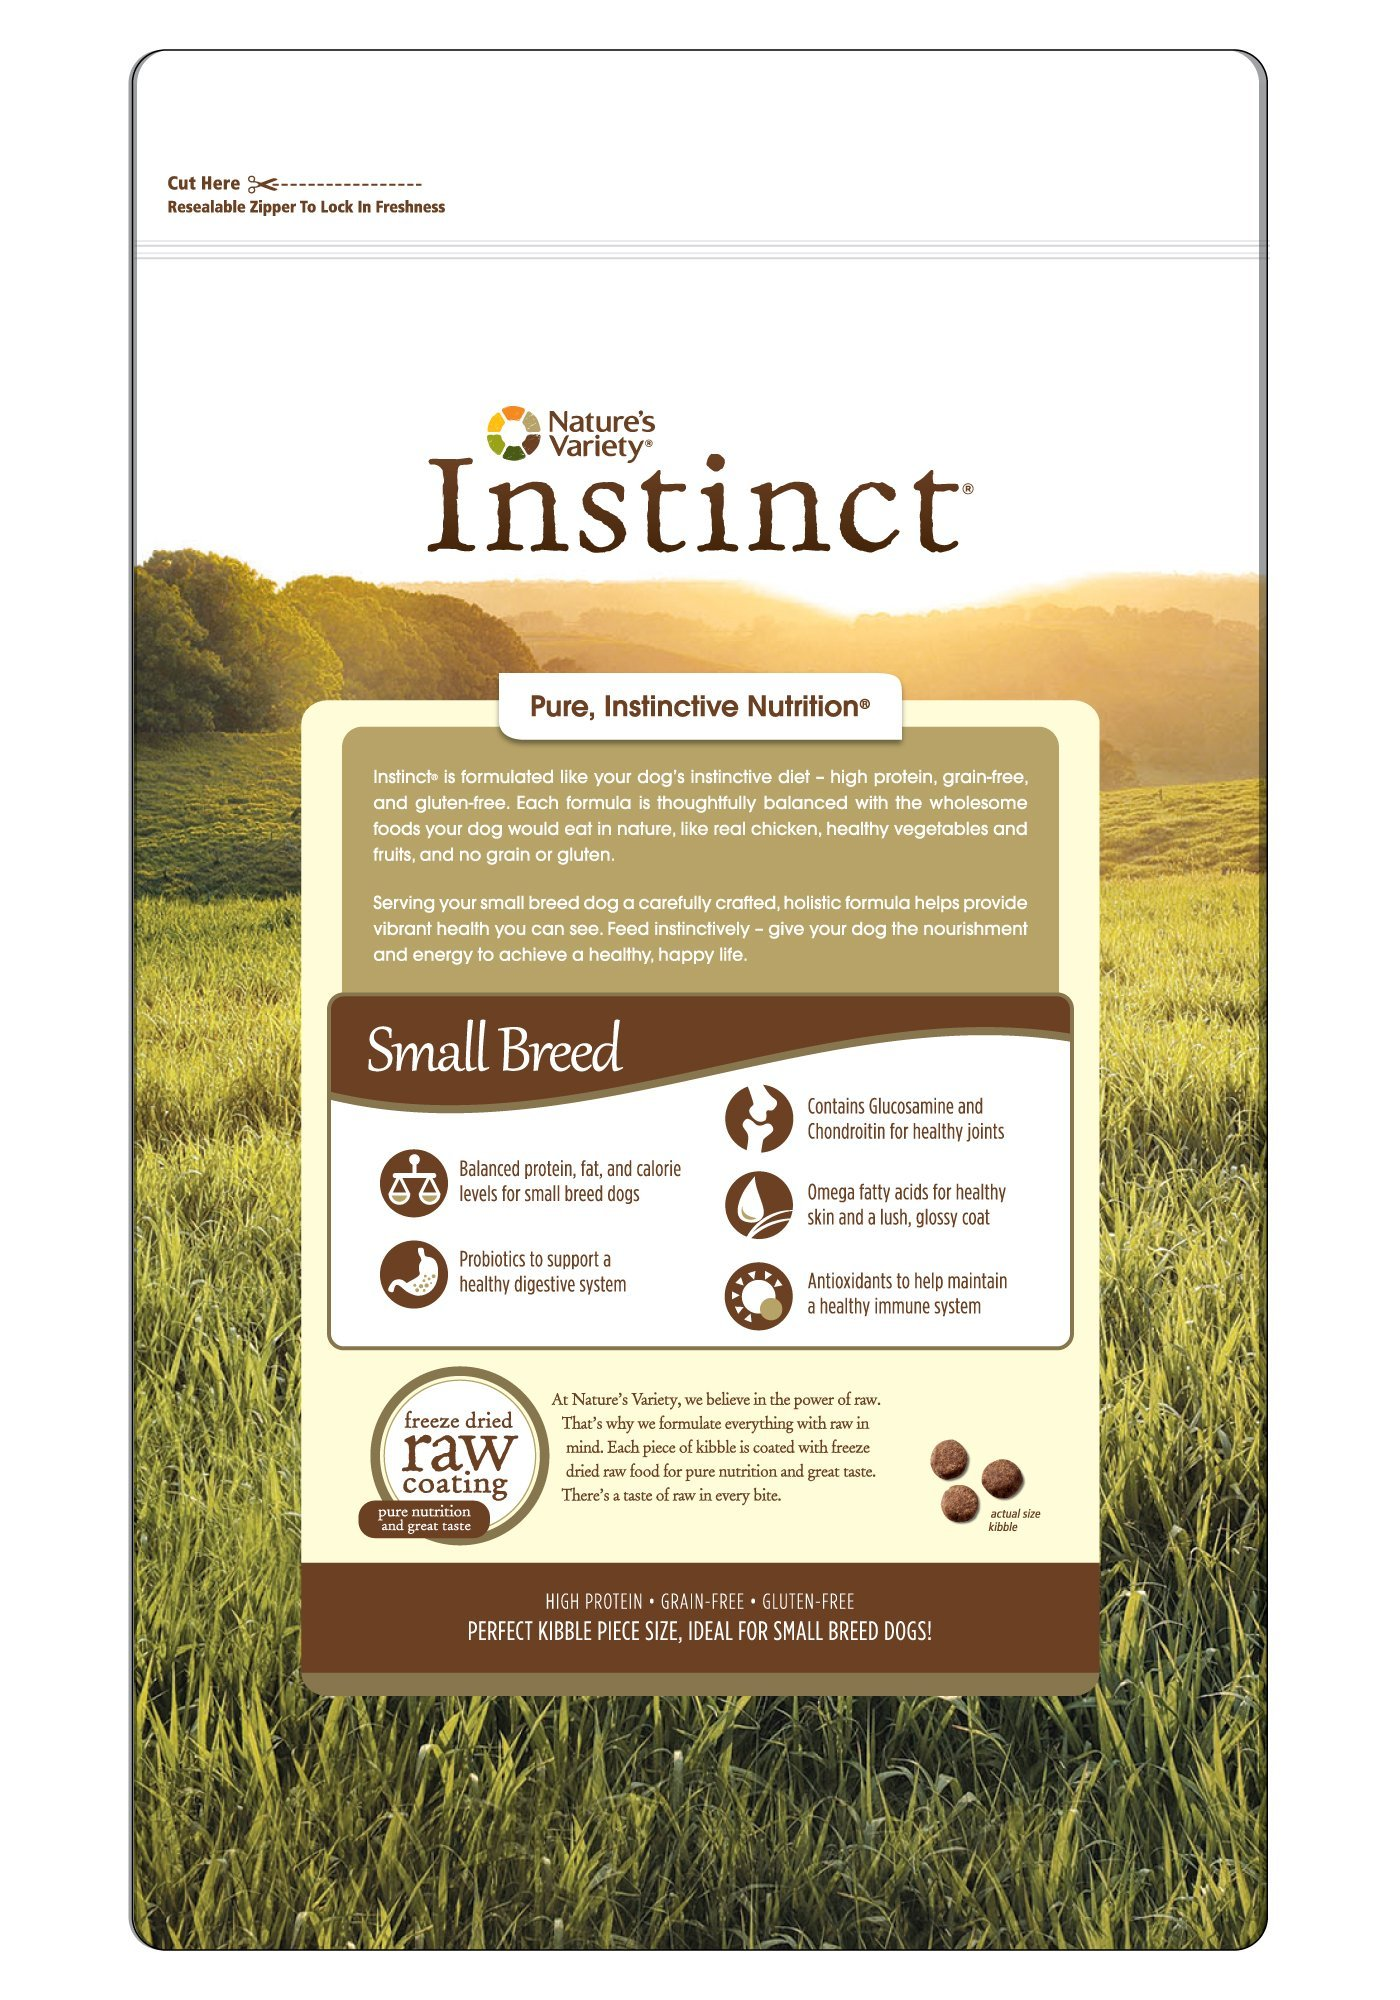 Instinct Original Small Breed Grain Free Chicken Meal Formula Natural Dry Dog Food by Nature's Variety, 4.4 lb. Bag by Nature's Variety (Image #2)